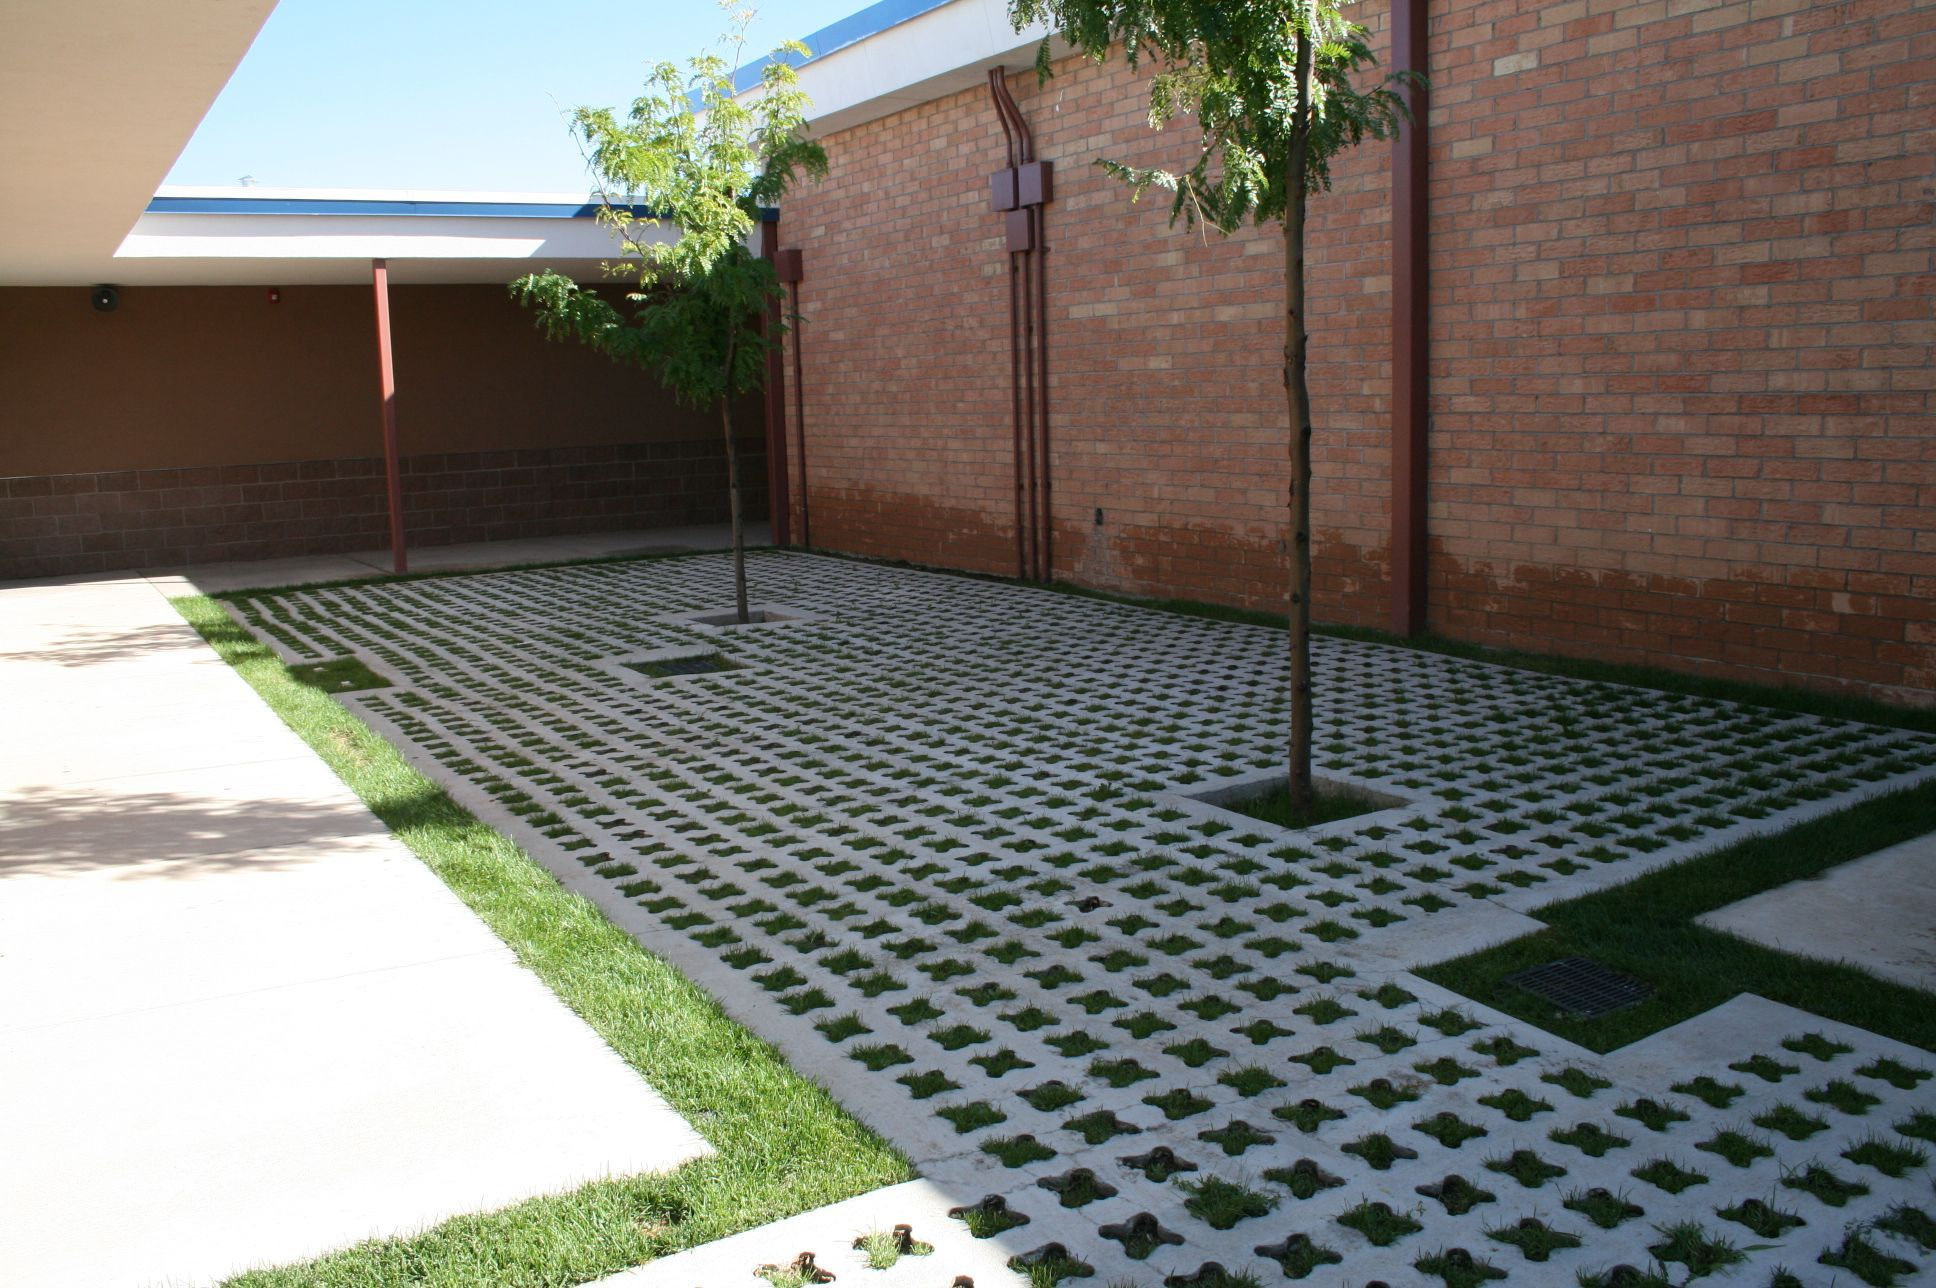 St. Mikes School - Entry Courtyard - Grasscrete Partially Concealed System For Stormwater Runoff